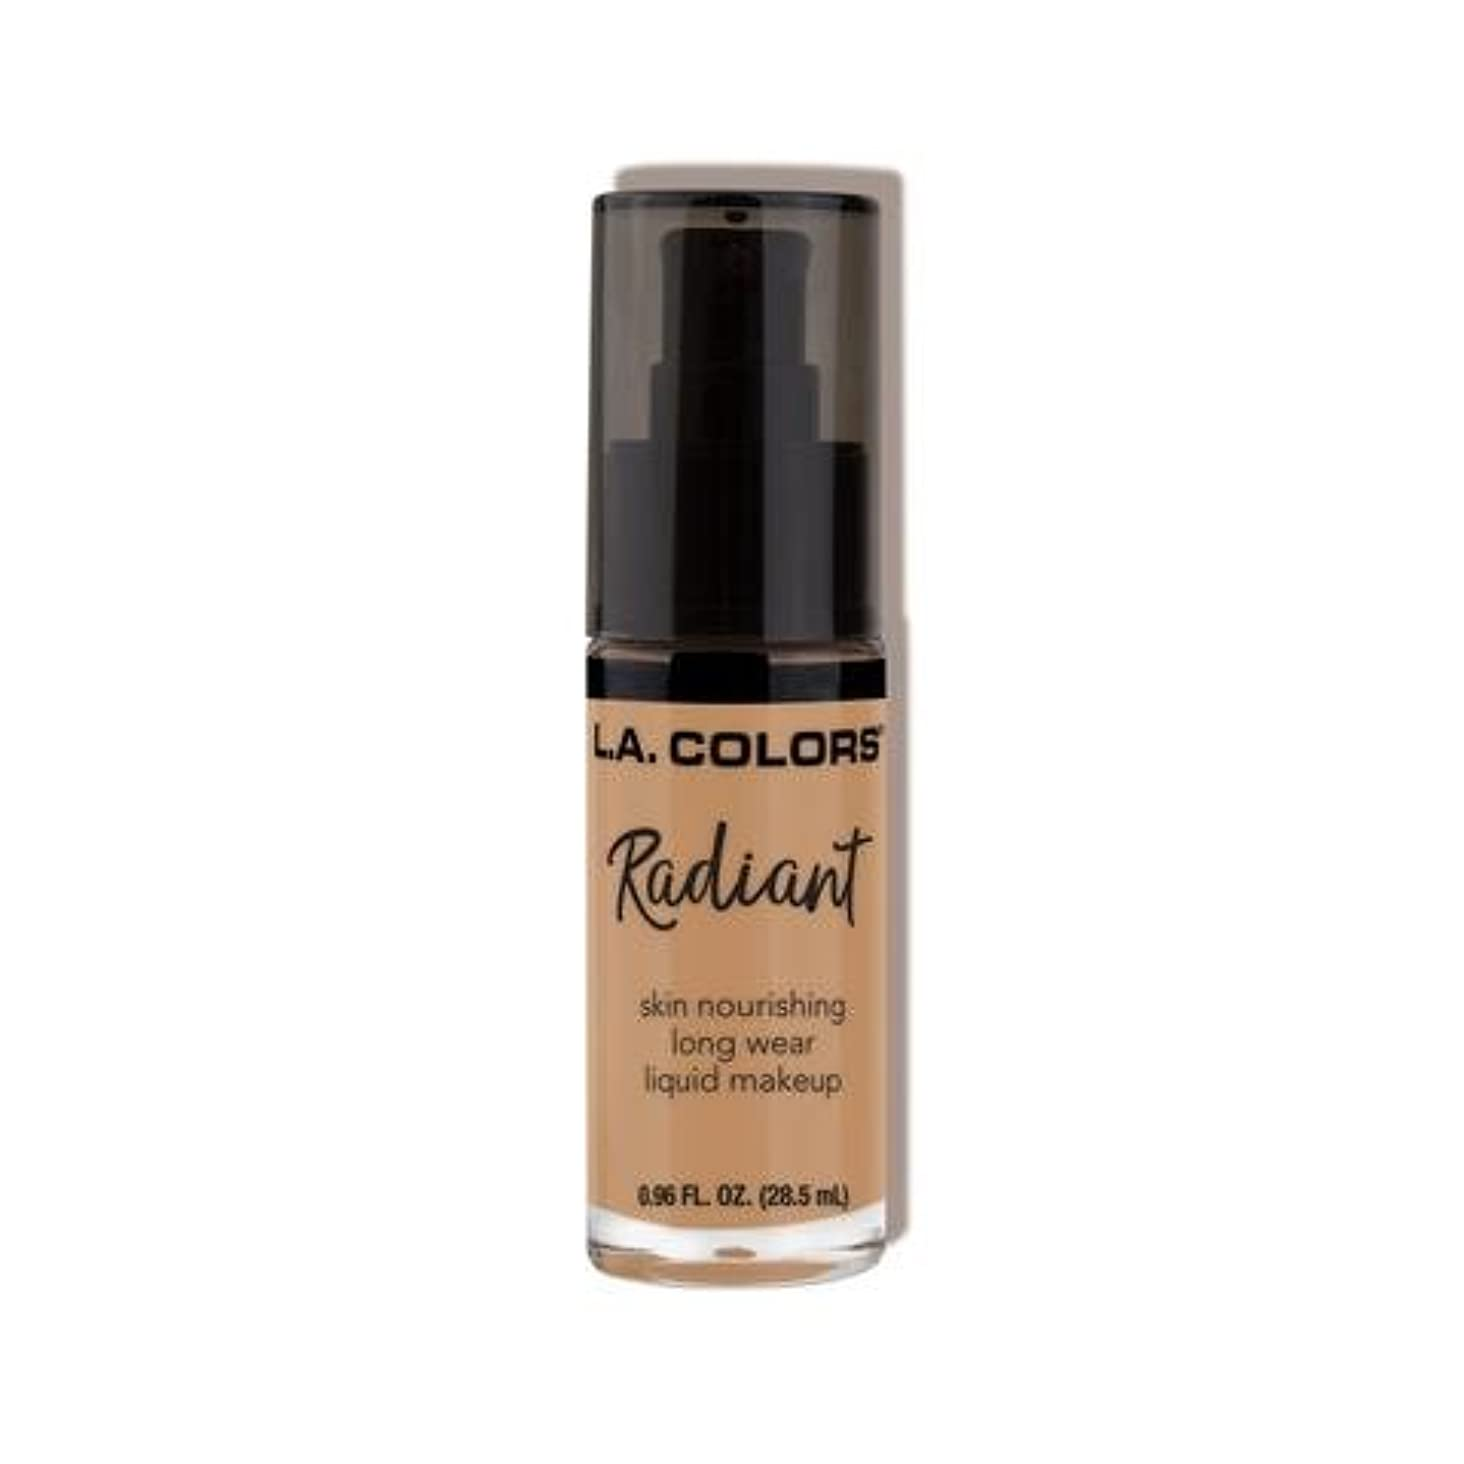 副説明的感じ(3 Pack) L.A. COLORS Radiant Liquid Makeup - Light Toffee (並行輸入品)